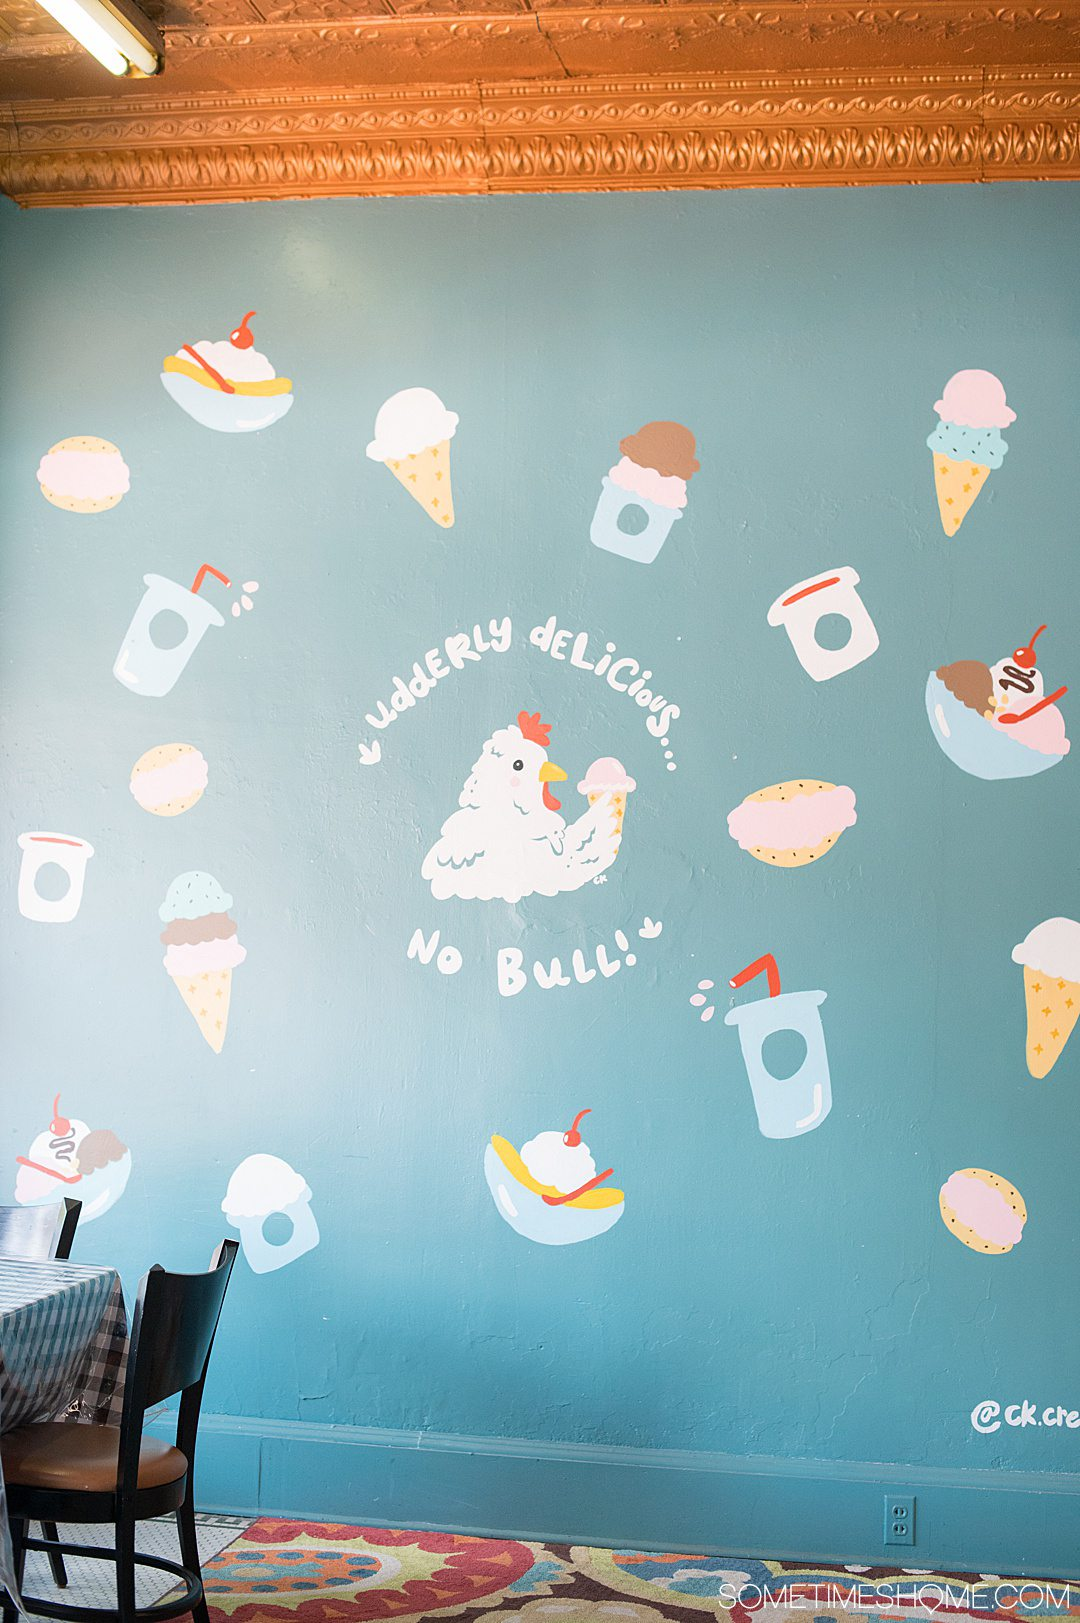 A blue wall with ice cream icons and a chicken painting in the middle at Chilly Chicken Creamery in Warrenton, NC.